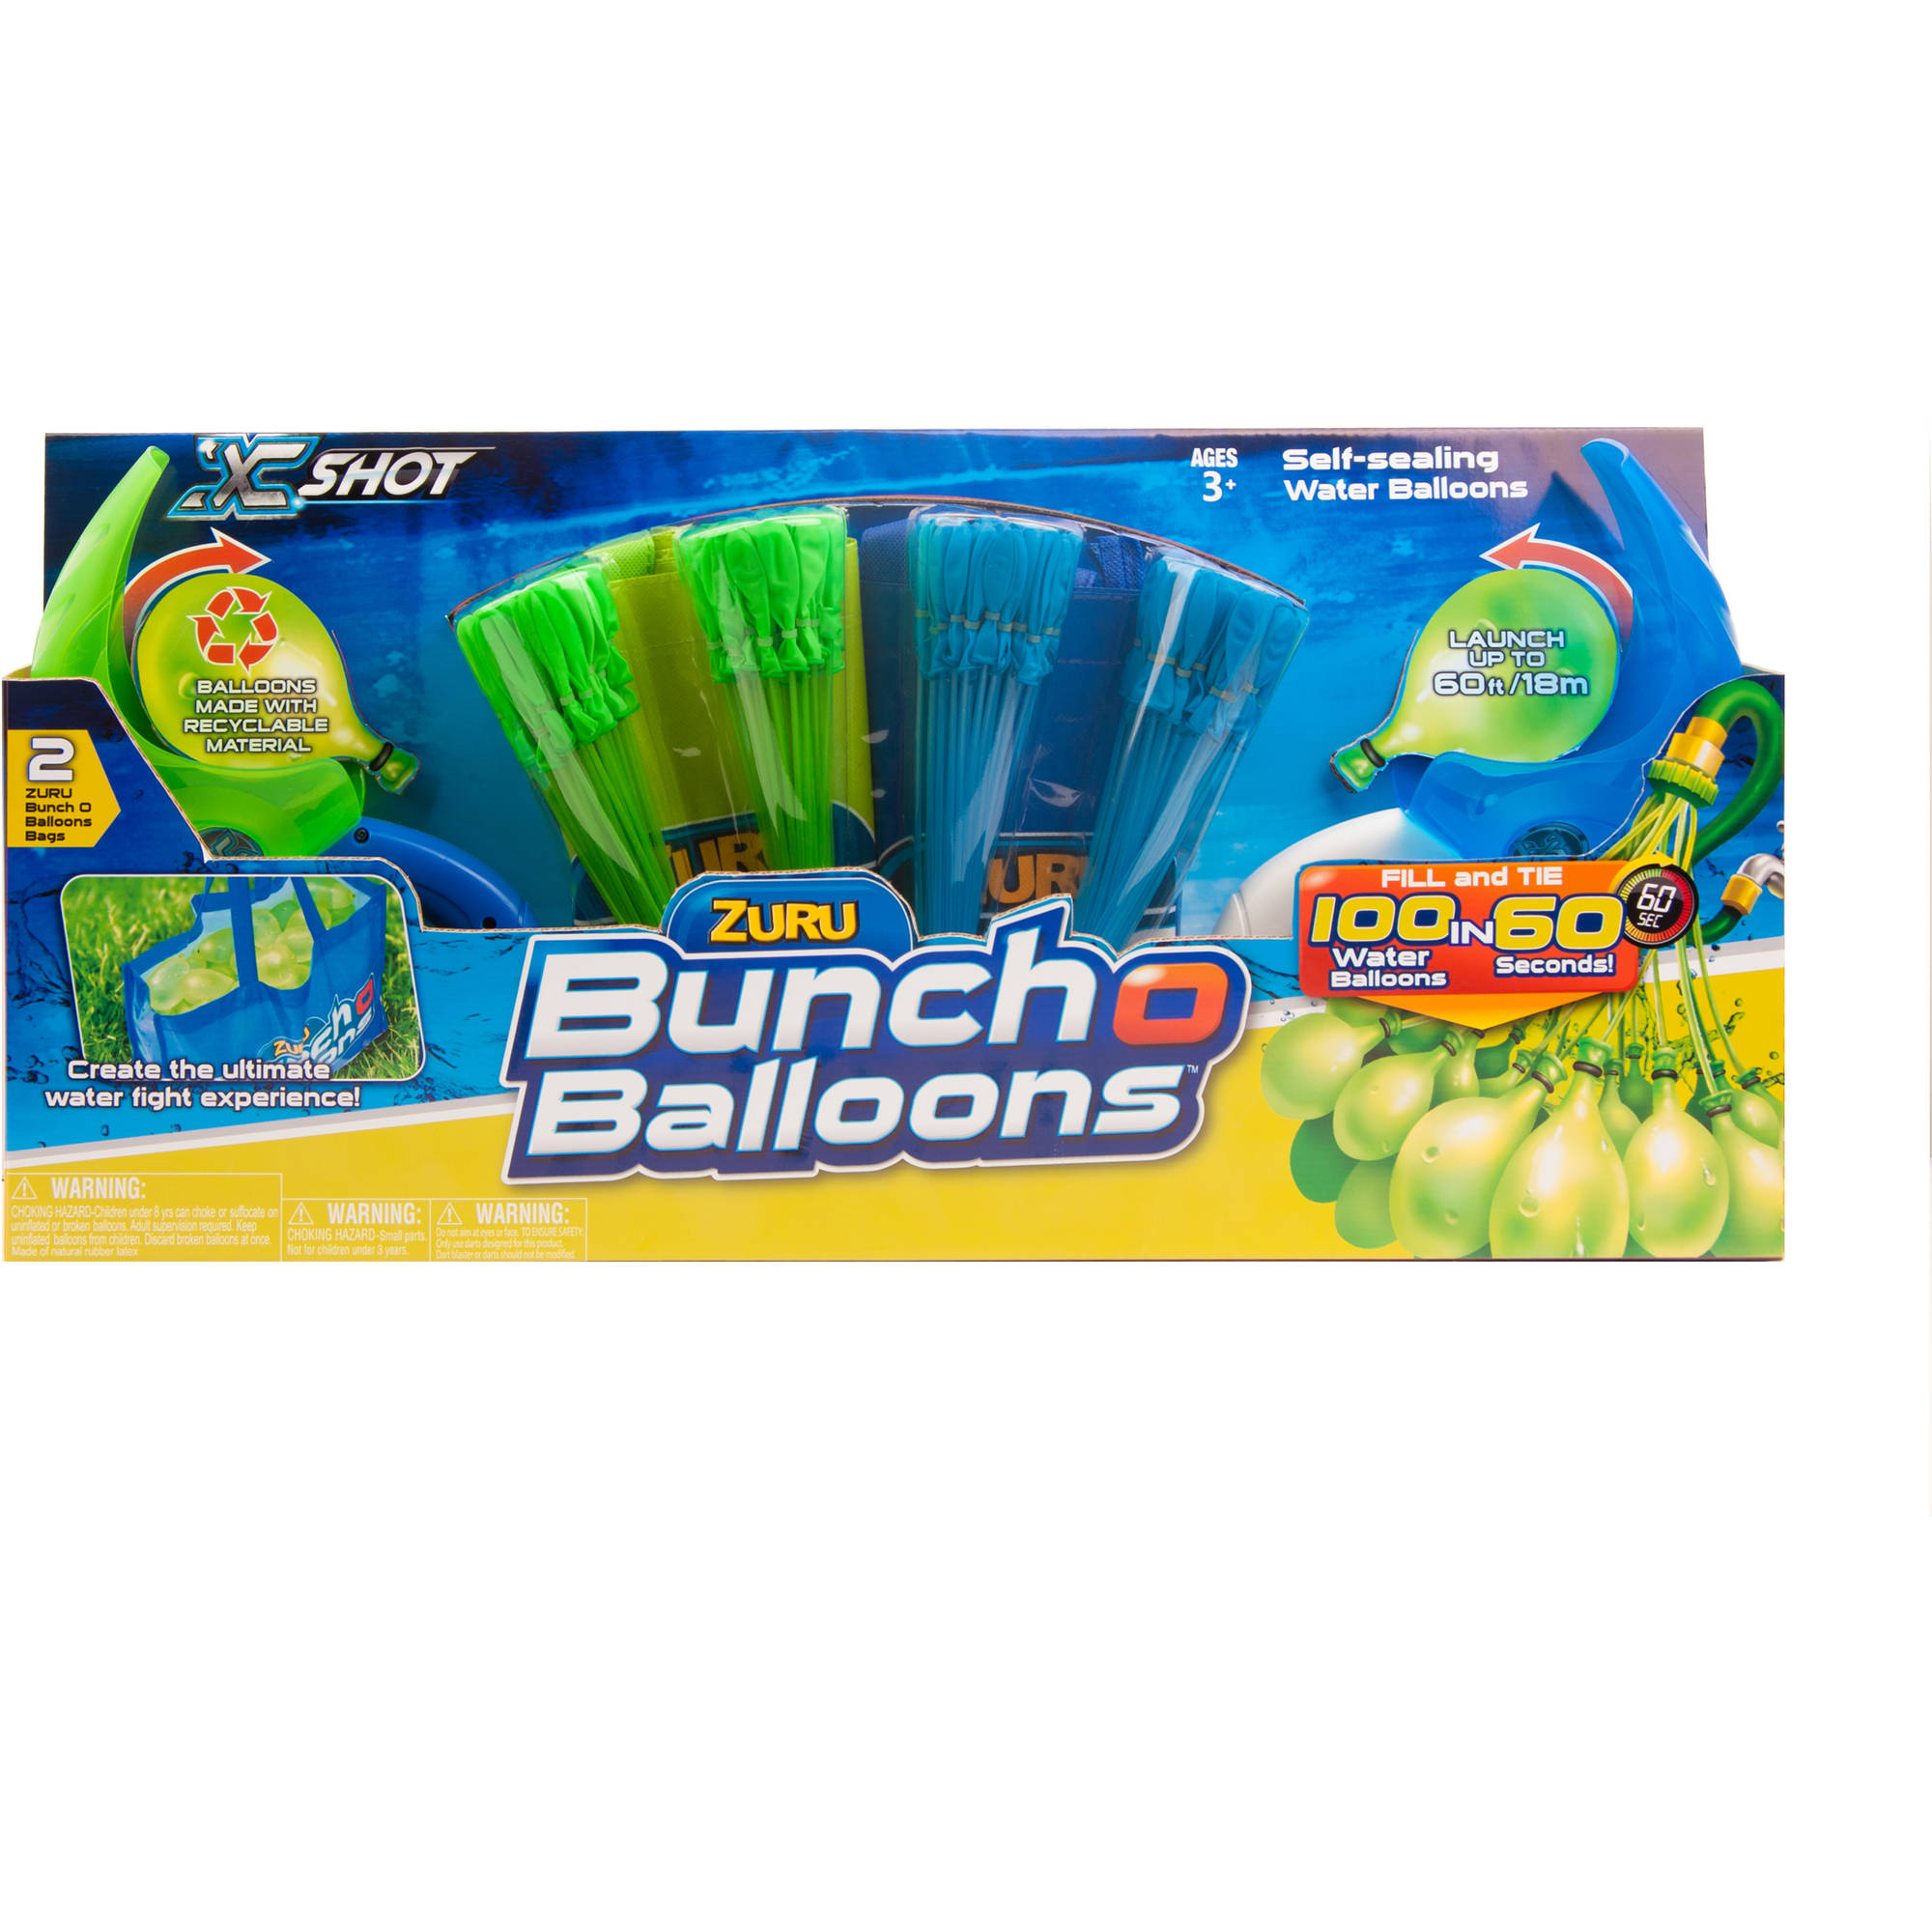 ZURU X-Shot Bunch O Balloons Launcher Value Pack